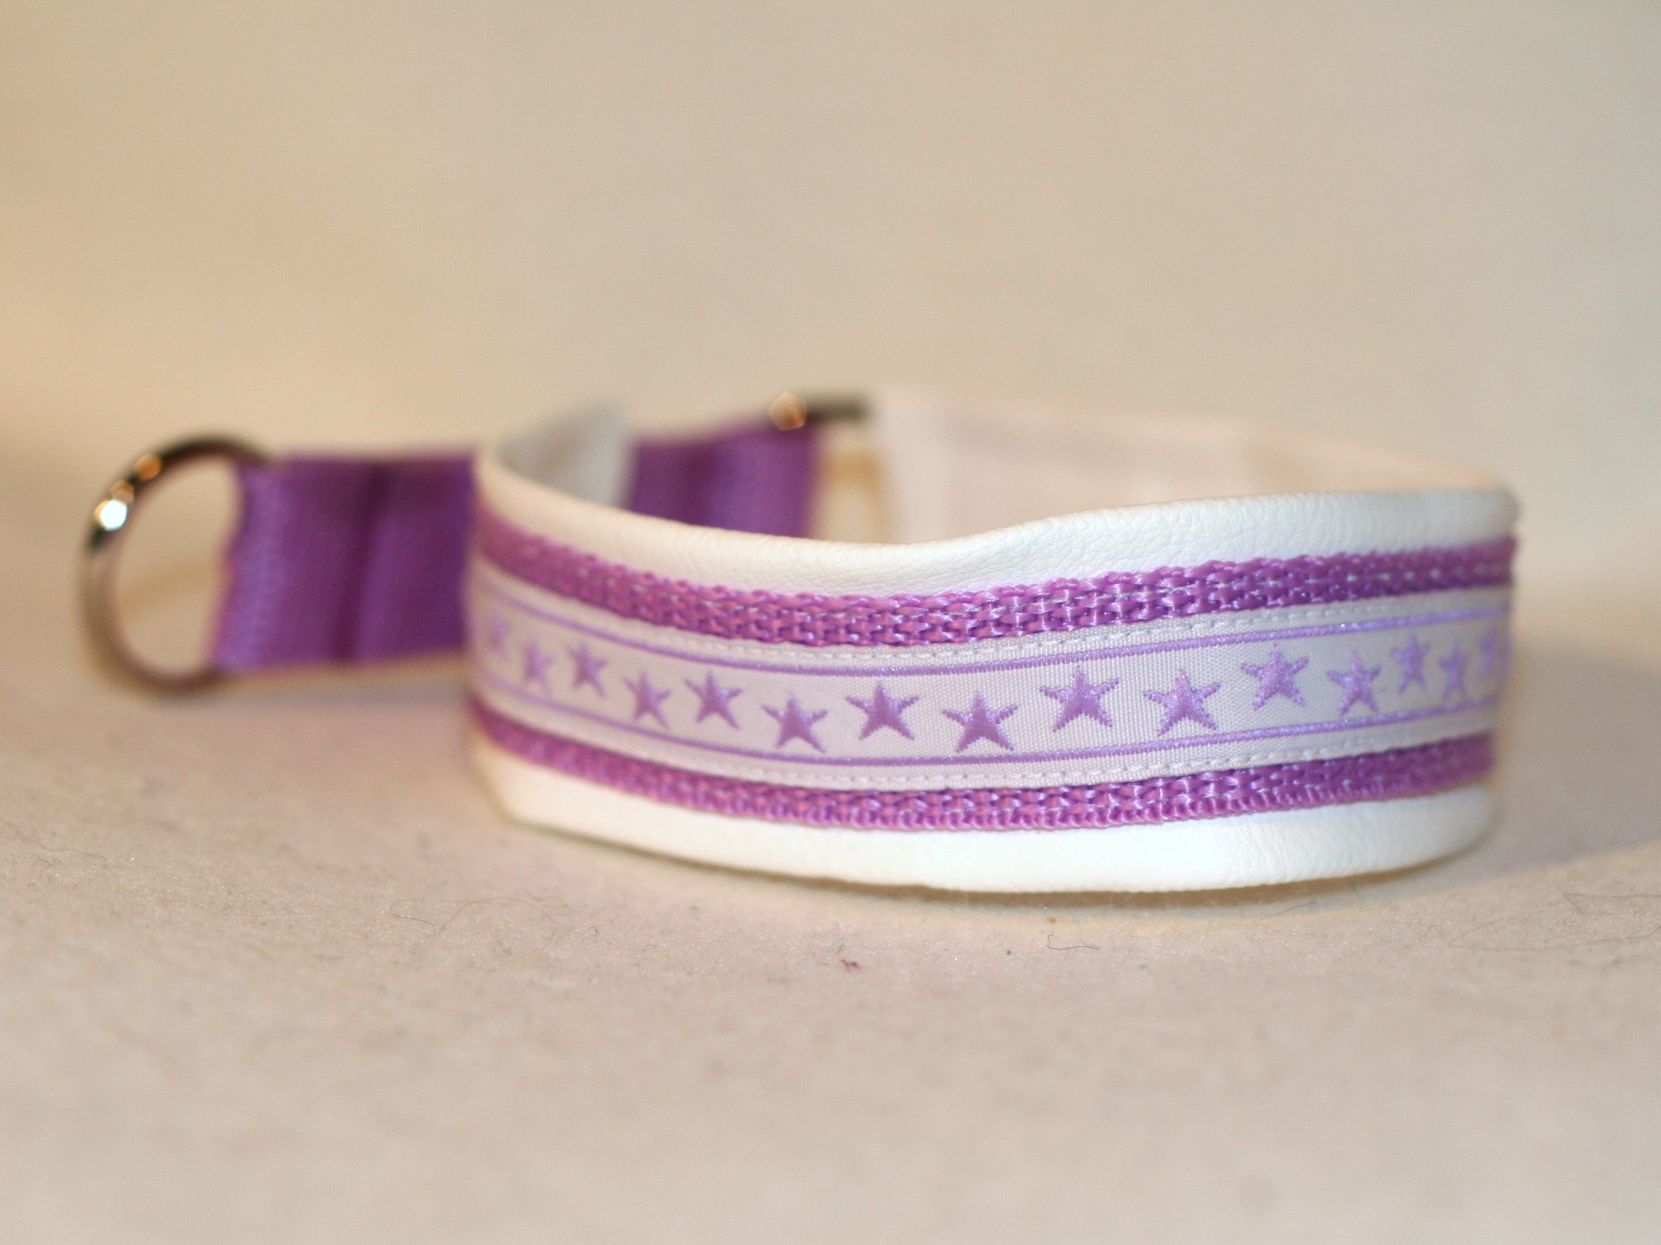 pull-stop-collar from youdids-dogdesign